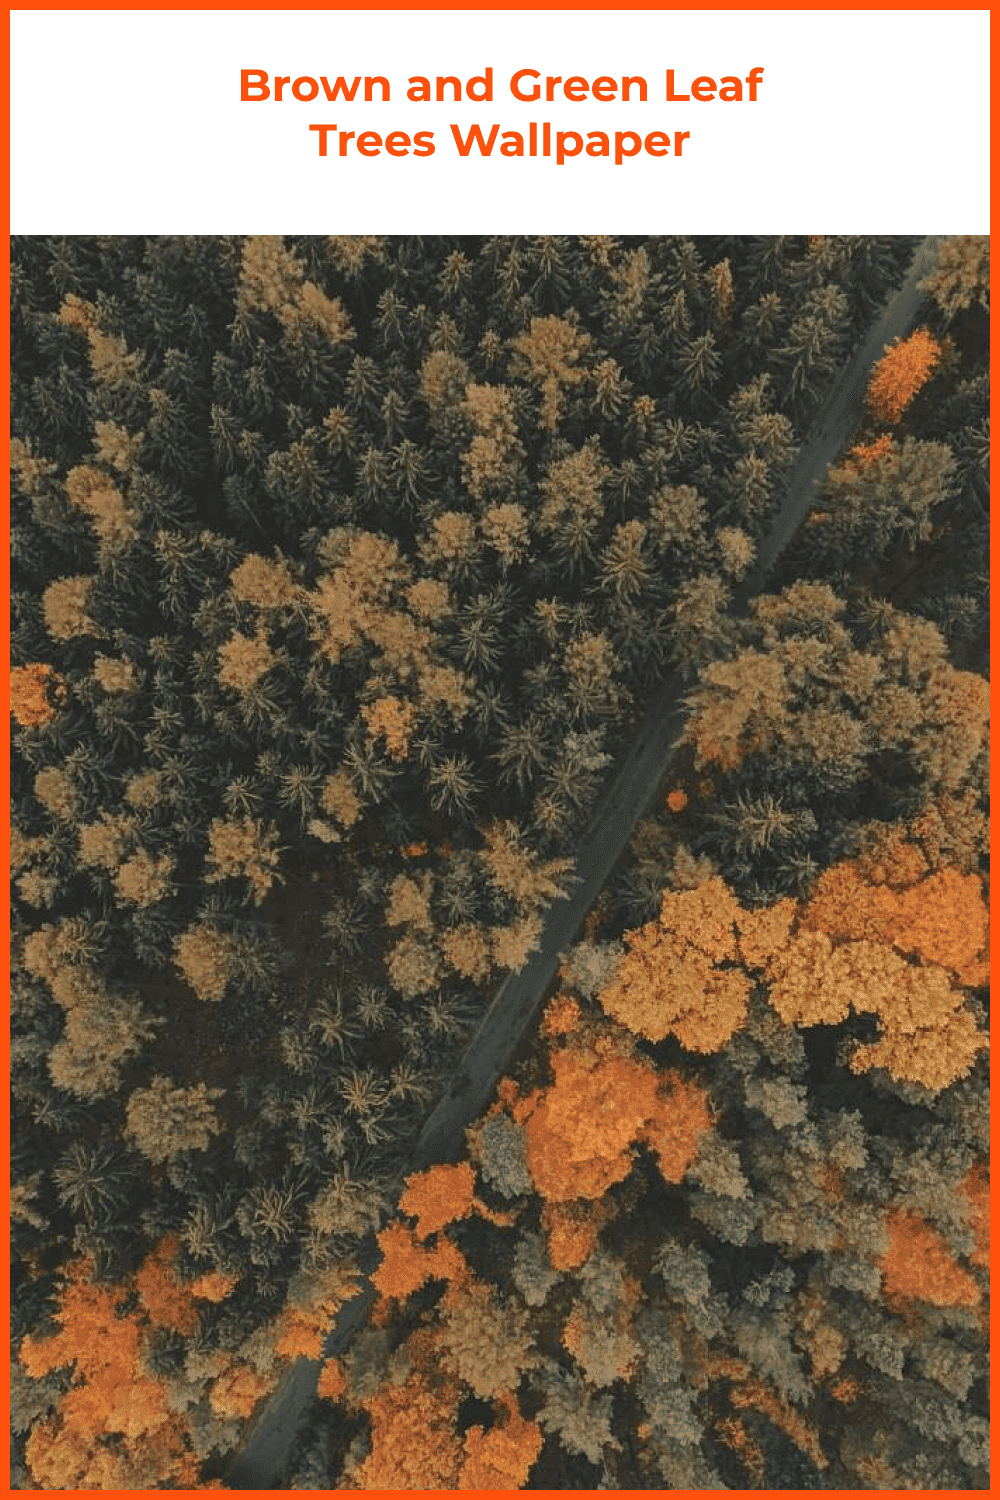 Wallpapers brown and green leaf tree fall.